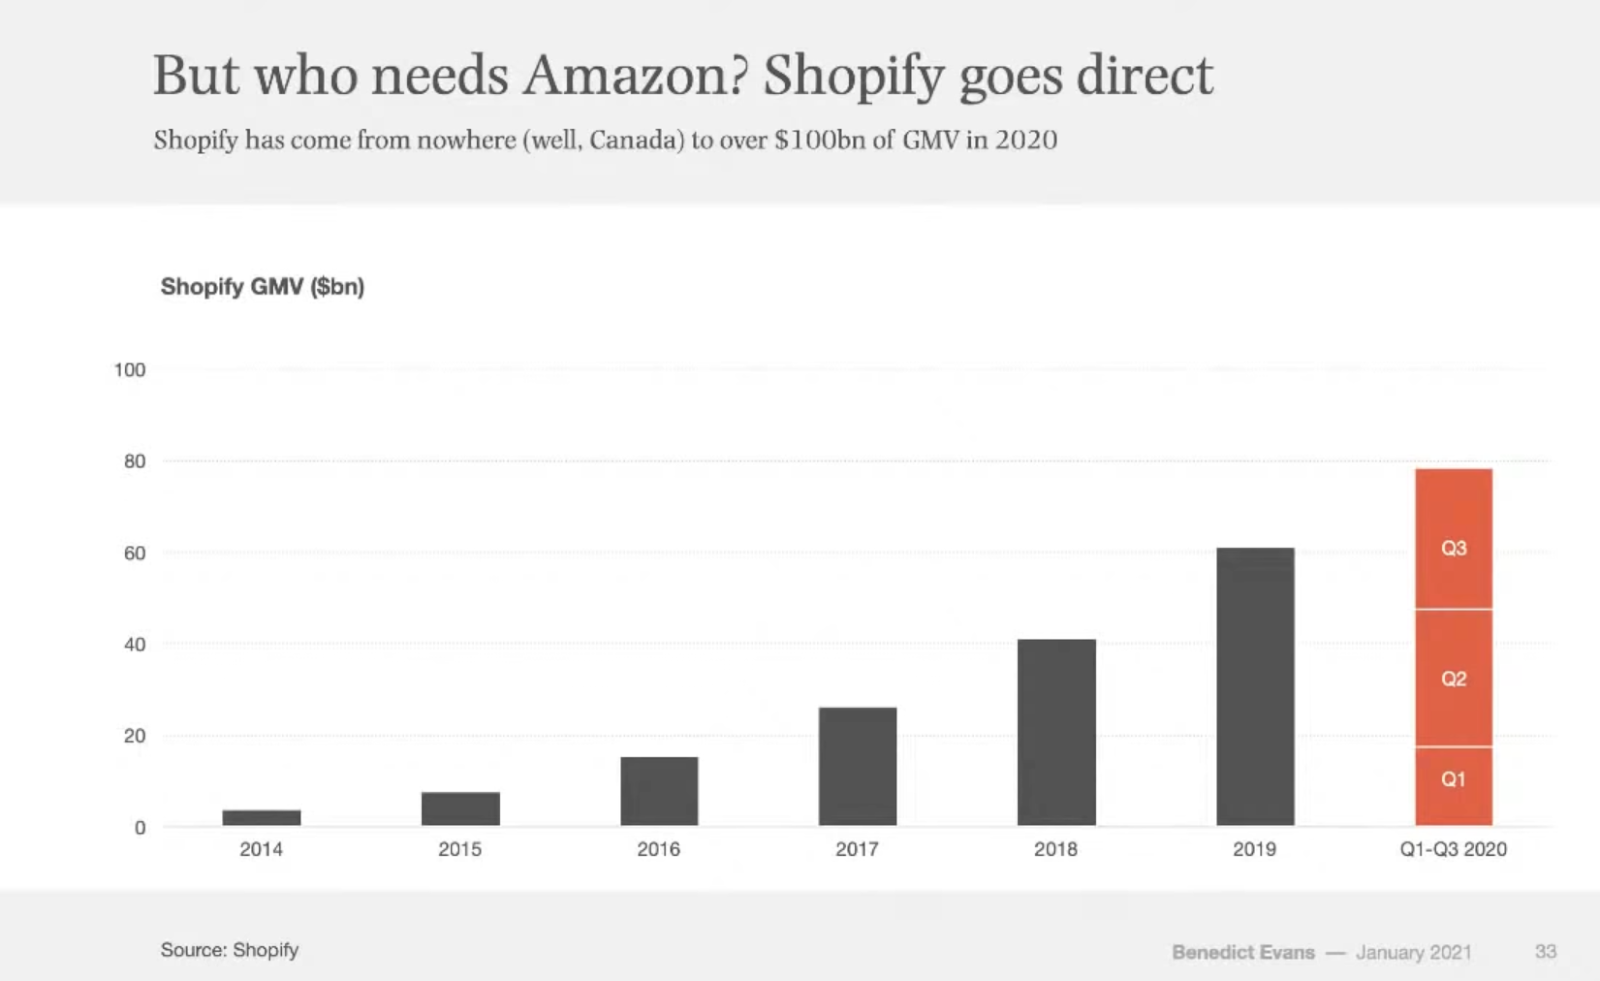 Shopify goes direct